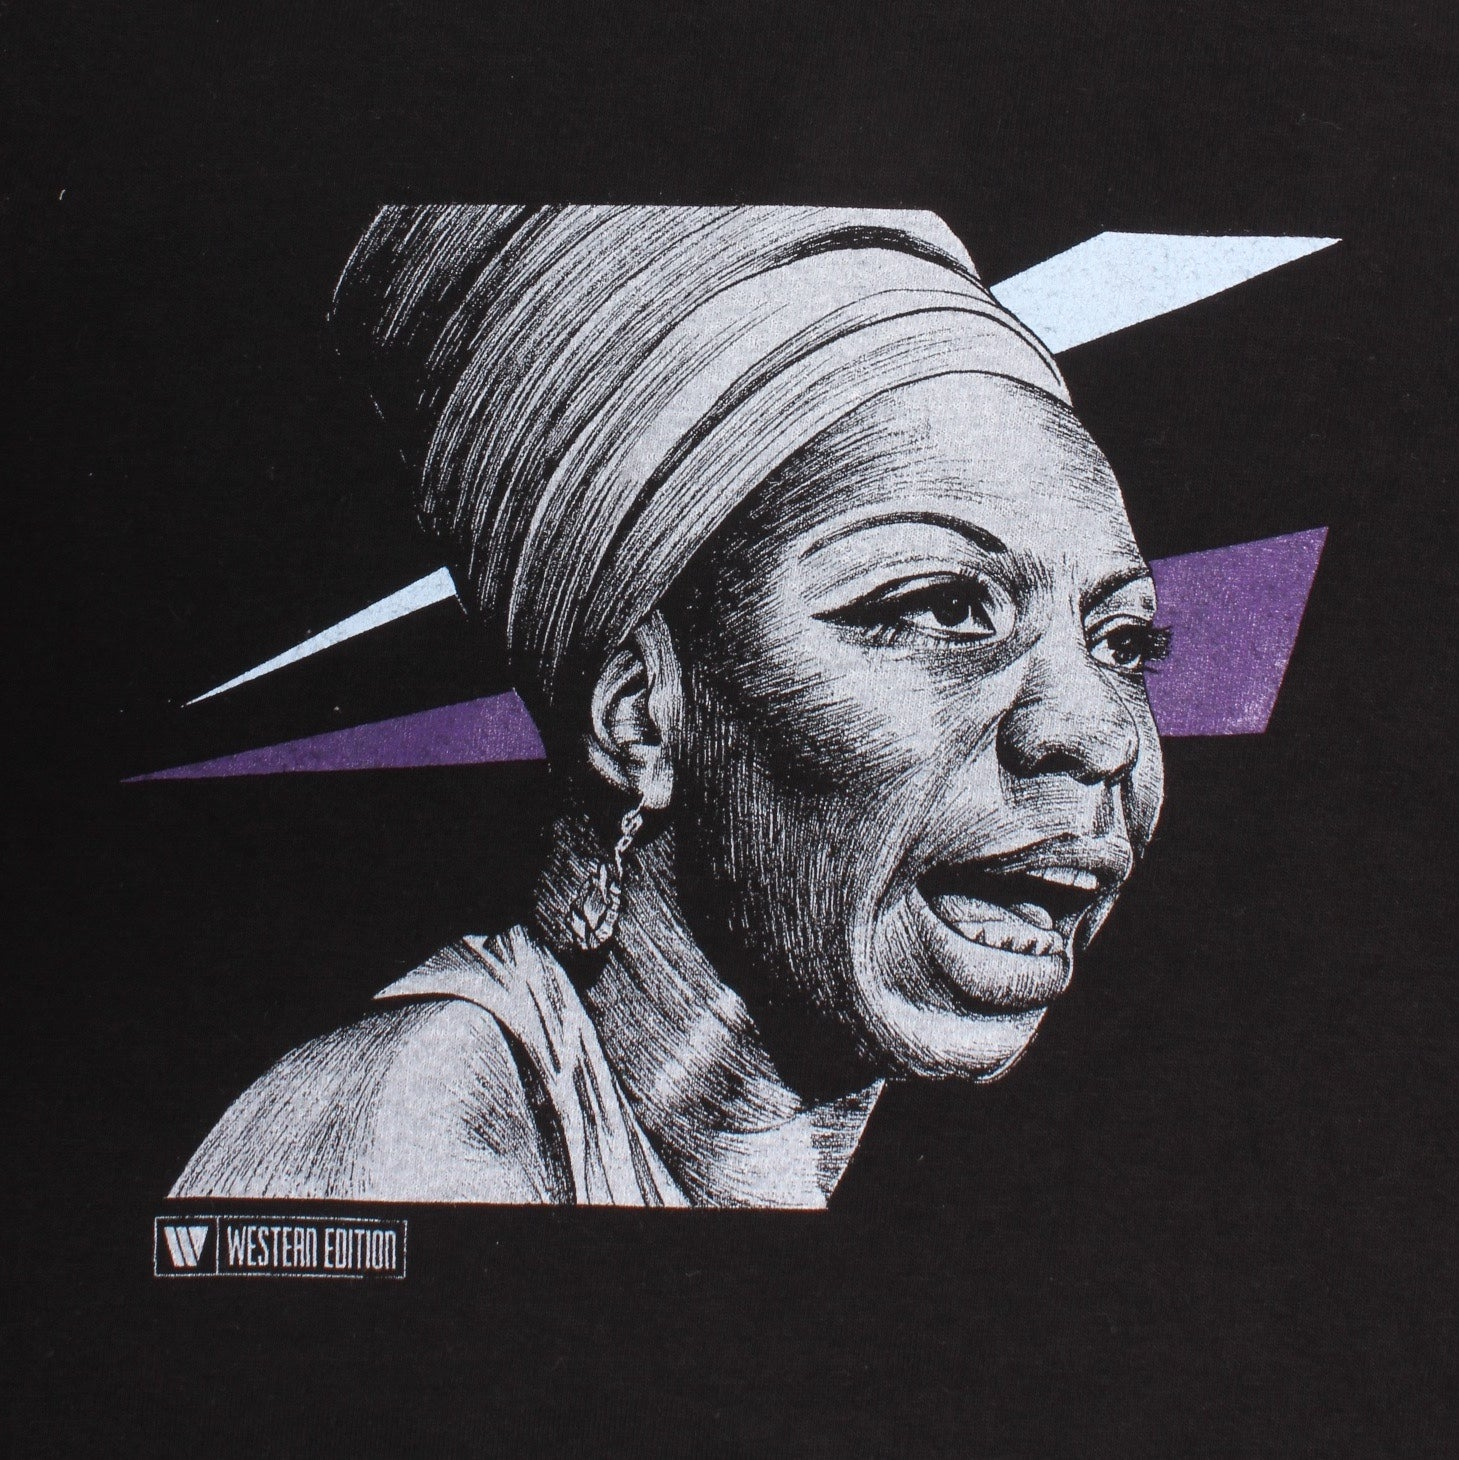 Overripe Western Edition Tee Nina Simone Ian Johnson Black Large NOS (2007)